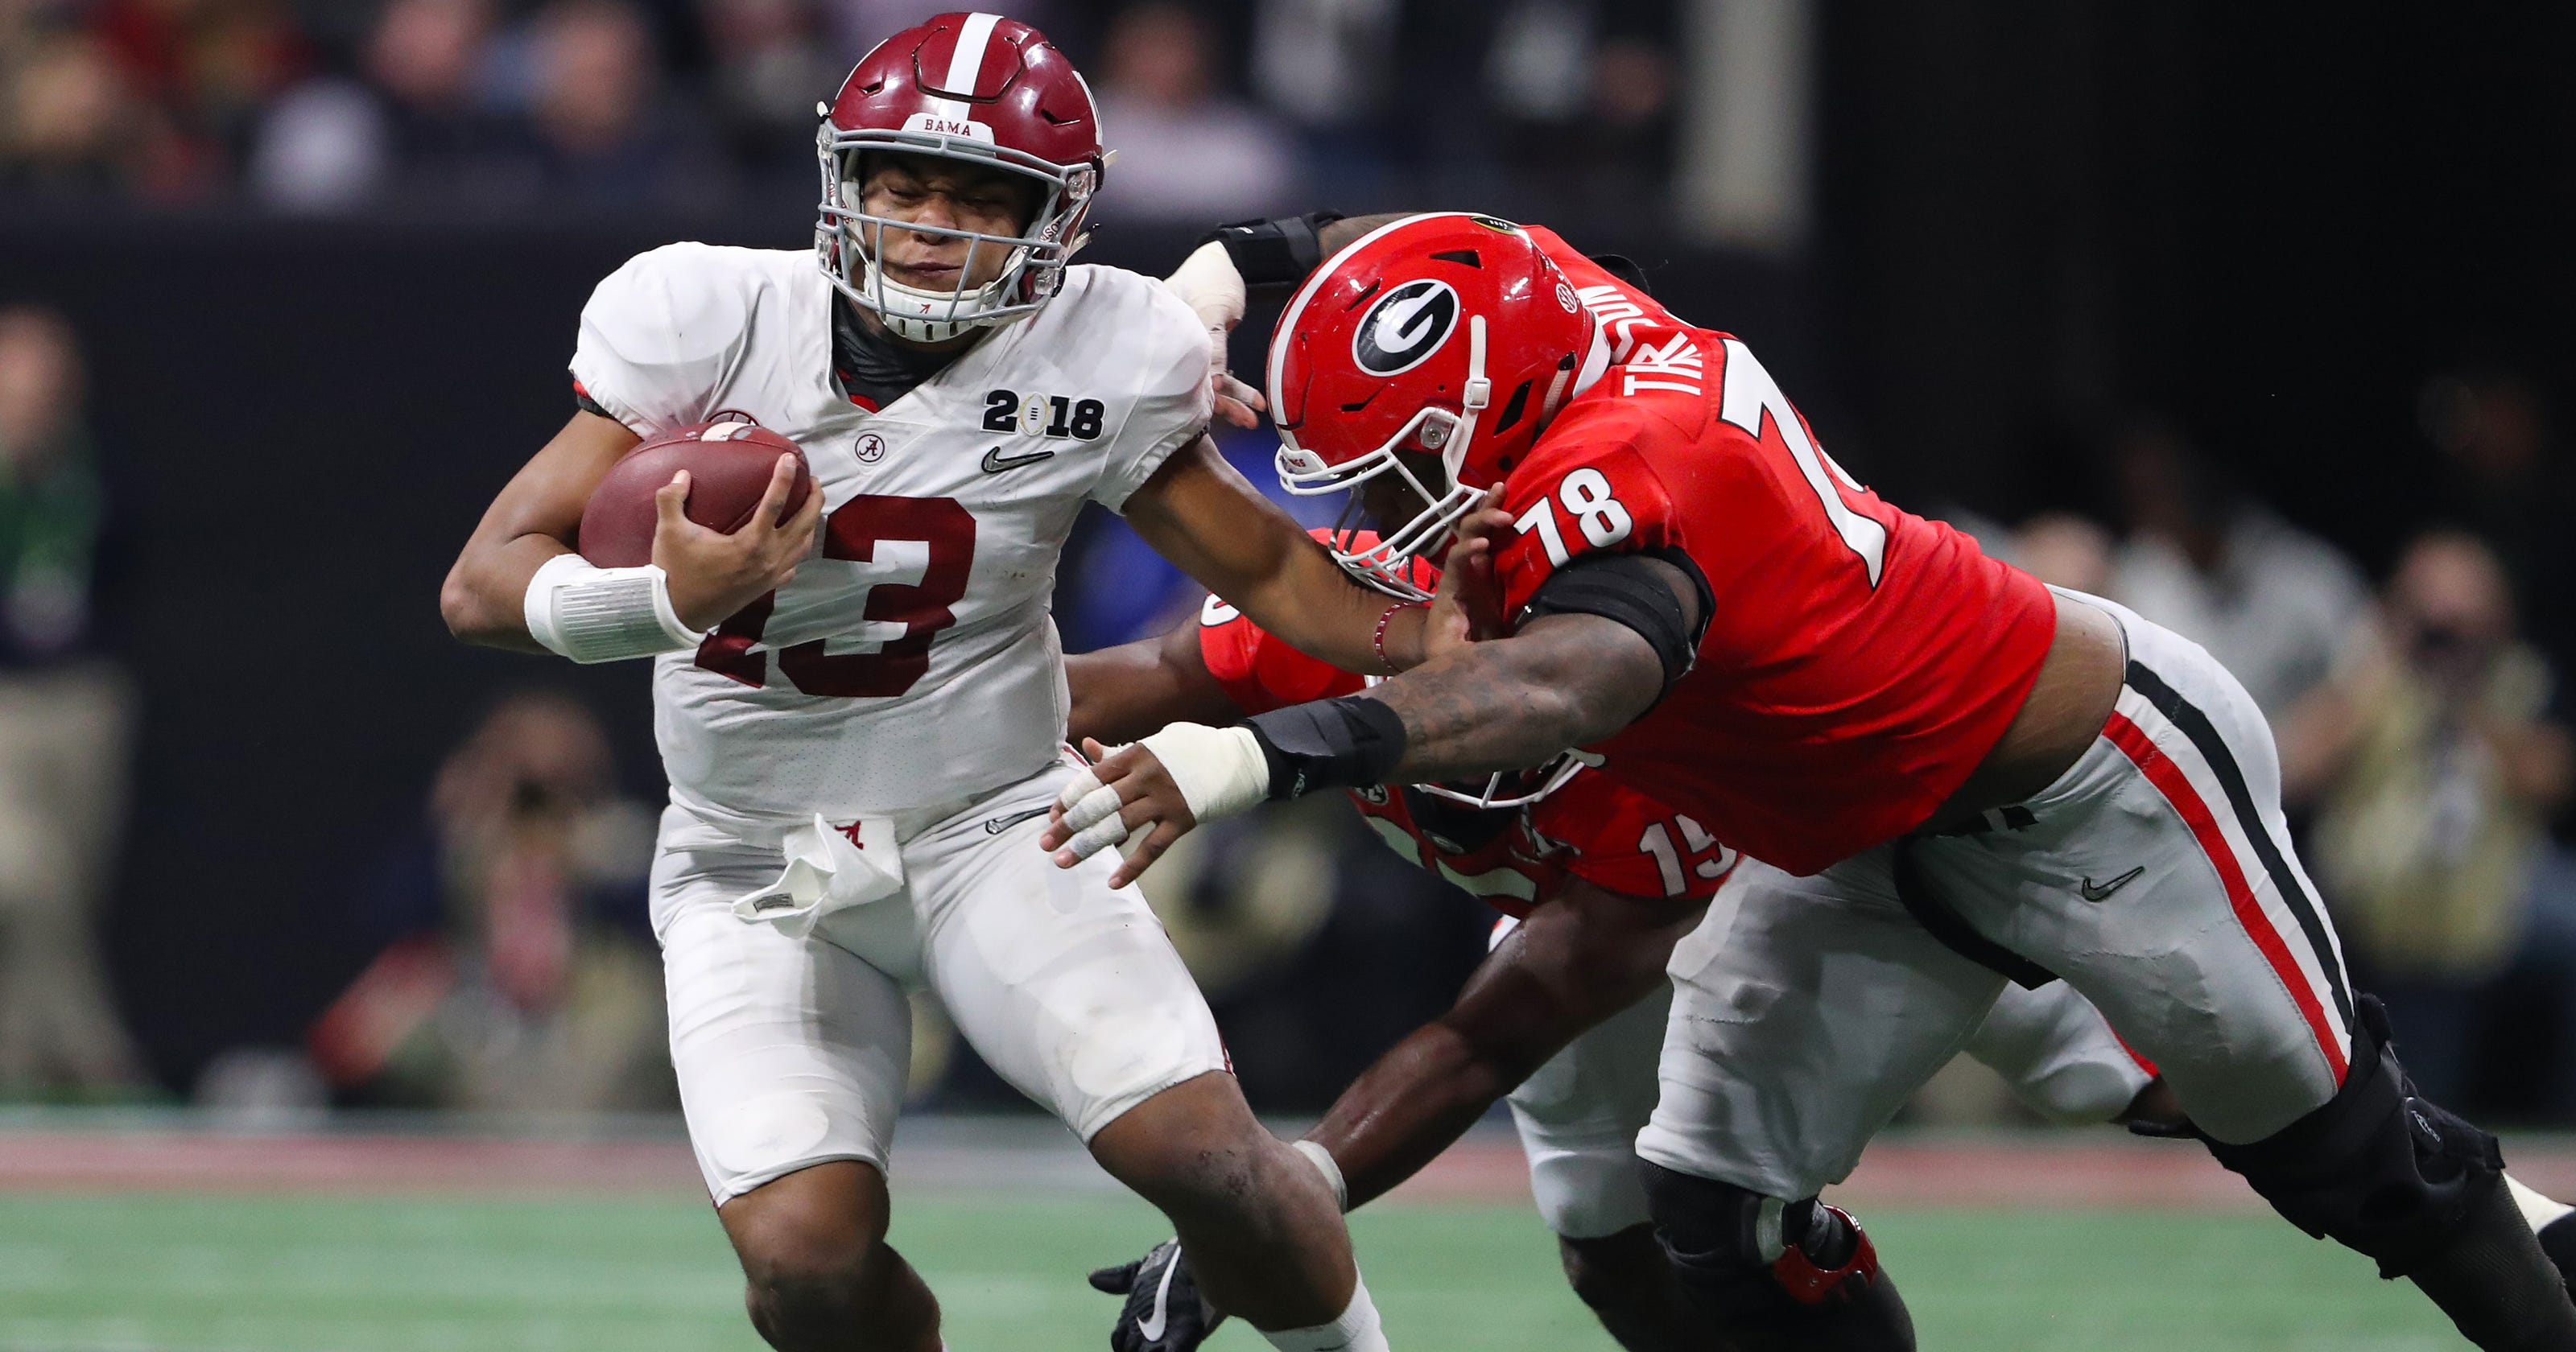 Amway Coaches Poll: Top 25 college football team outlooks